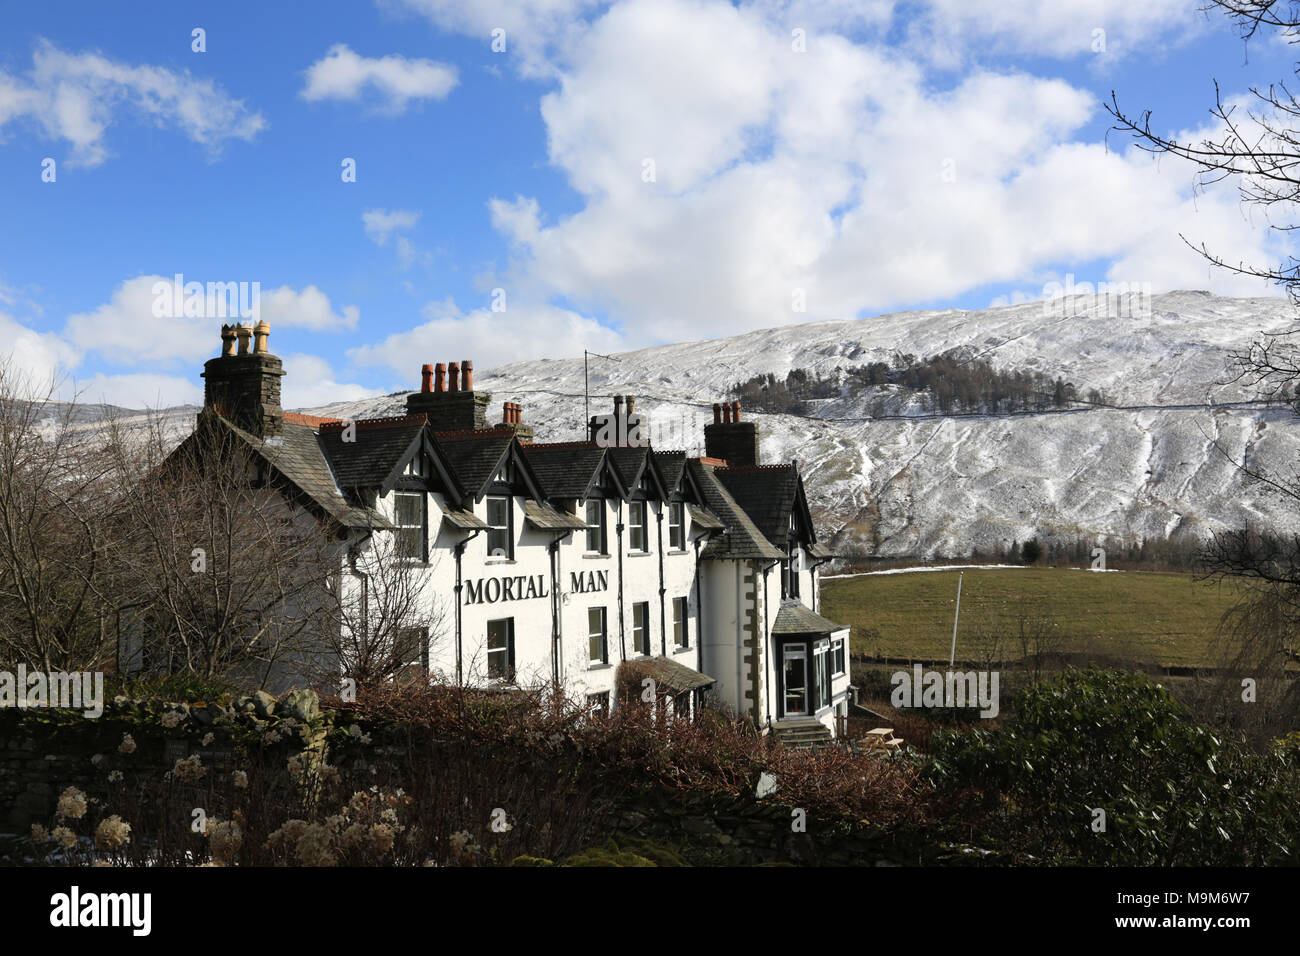 The Mortal Man pub at Troutbeck in the English Lake district, Cumbria, uk. - Stock Image